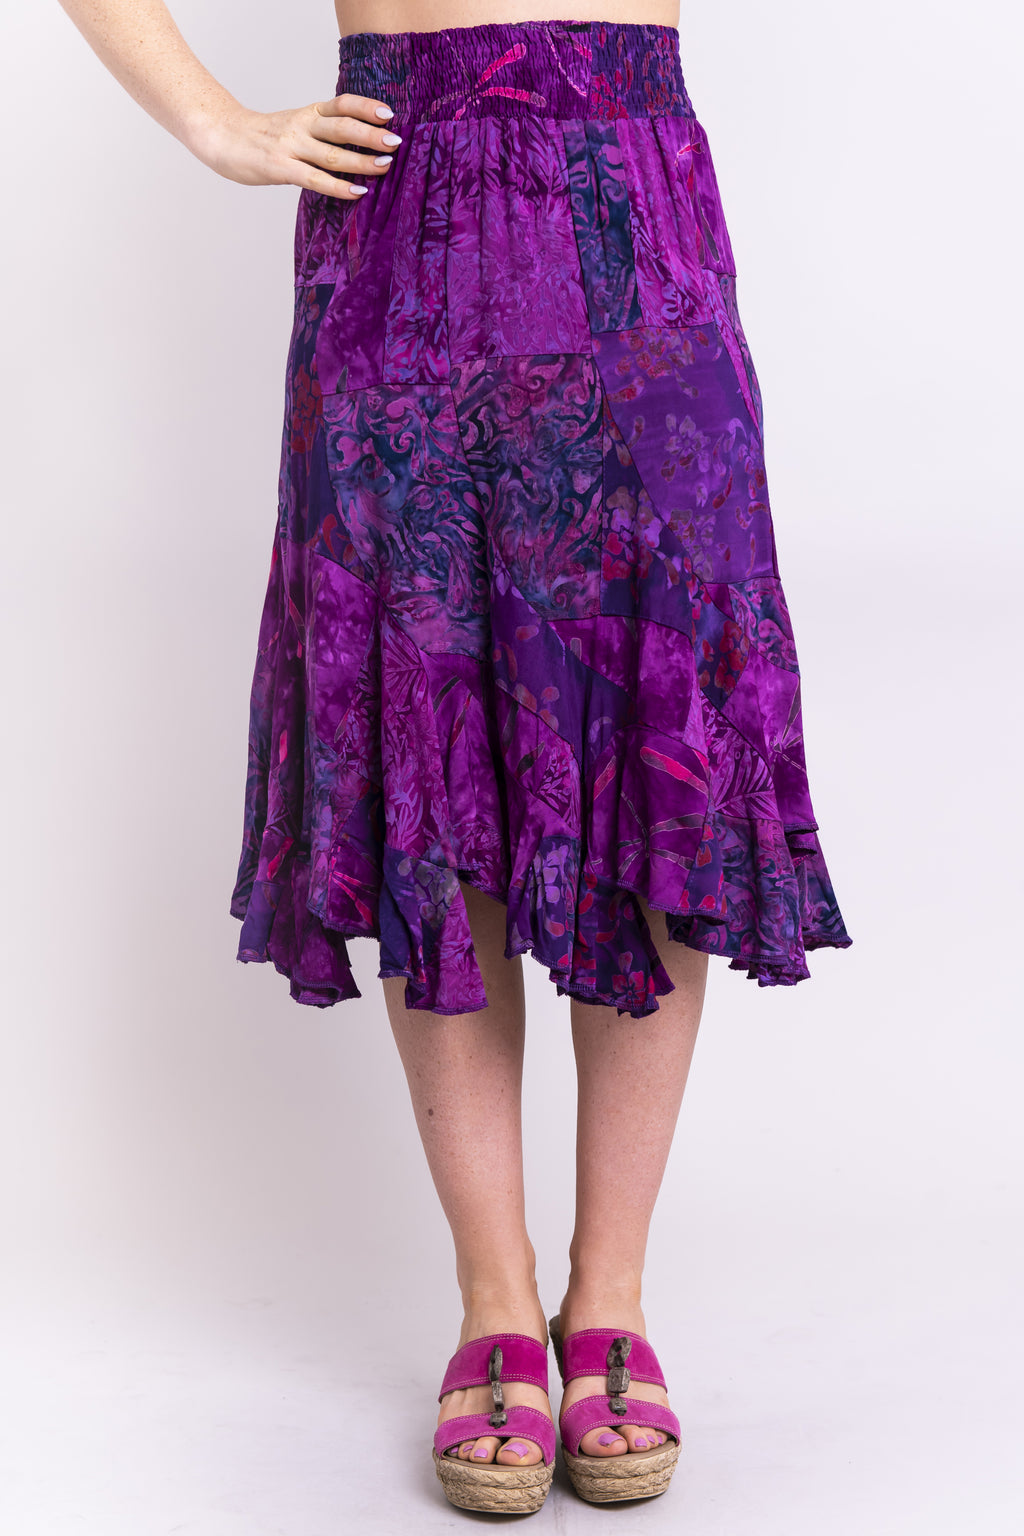 Patchwork Skirt, Magic Magenta, Batik Art - Blue Sky Clothing Co